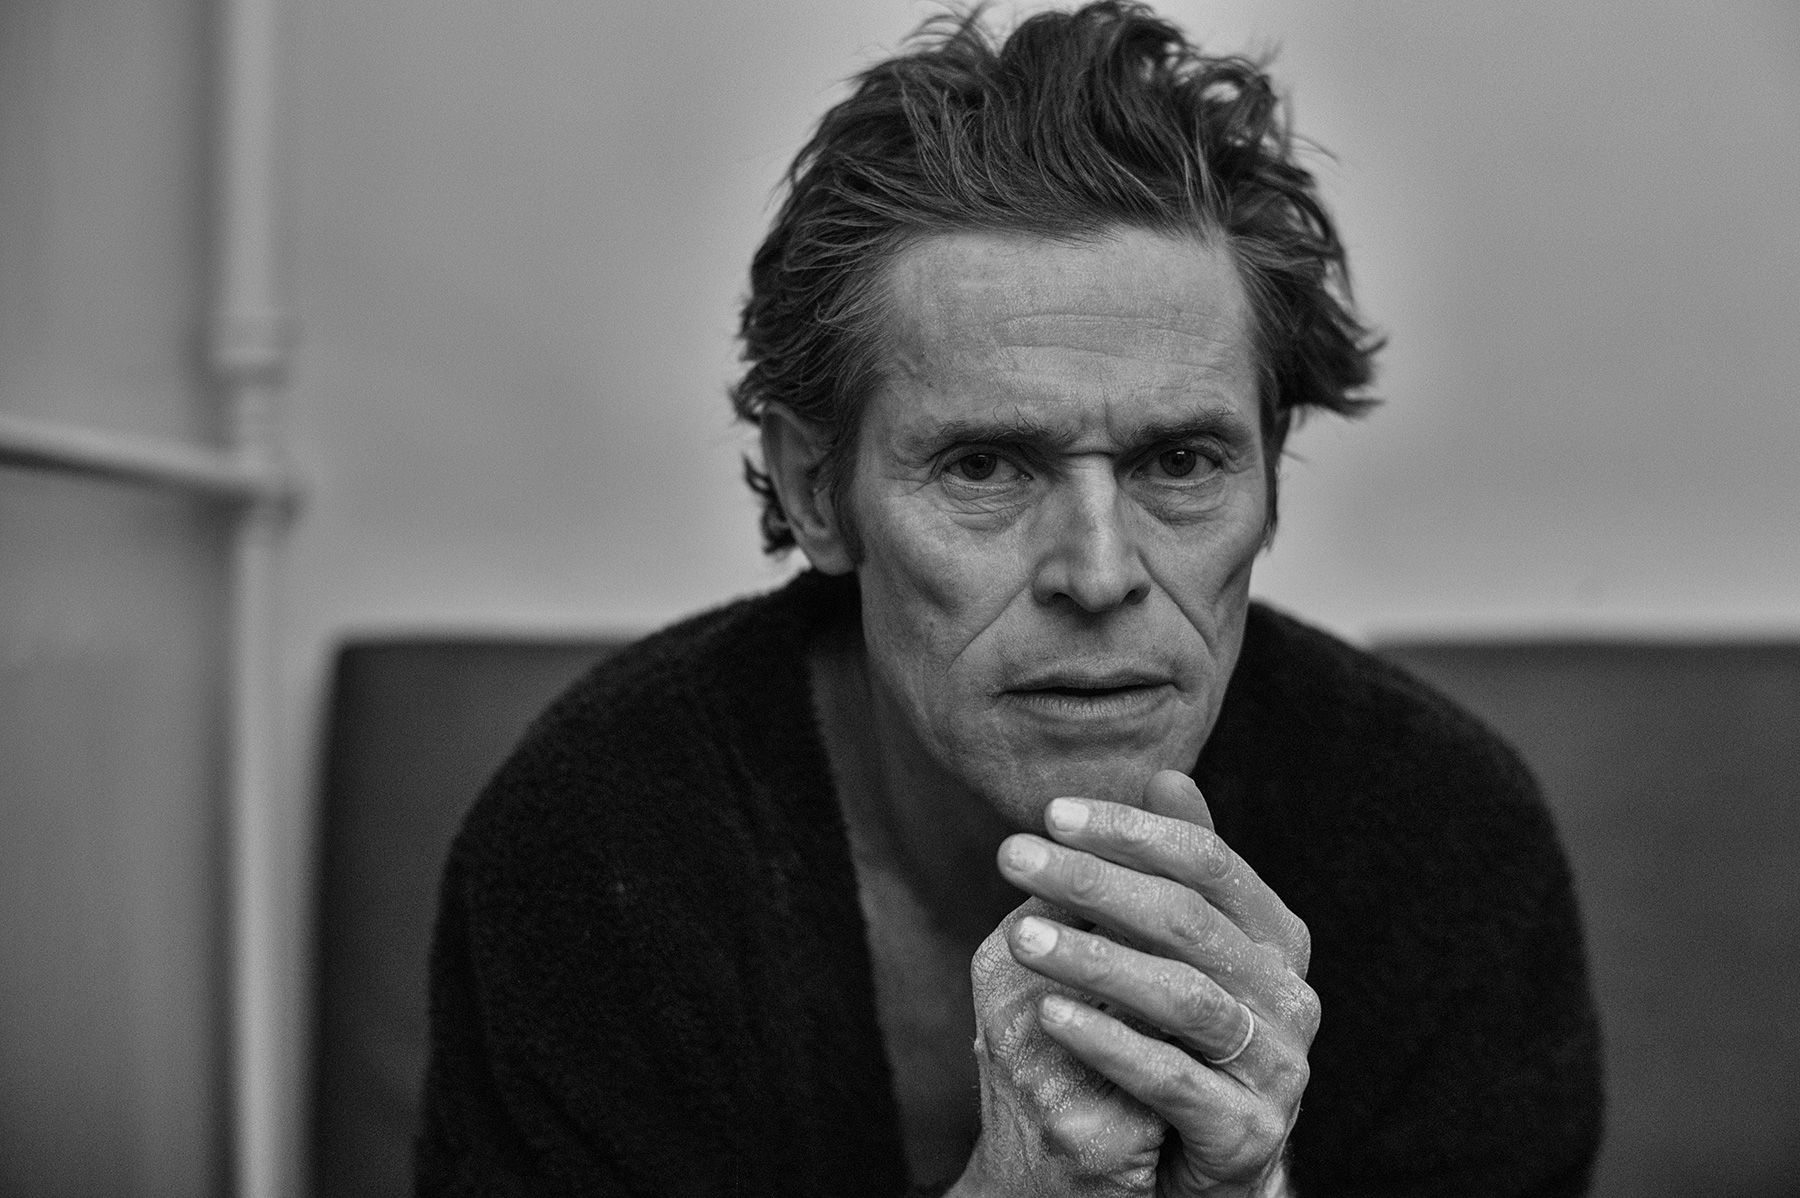 monochrome willem dafoe wallpaper 56332